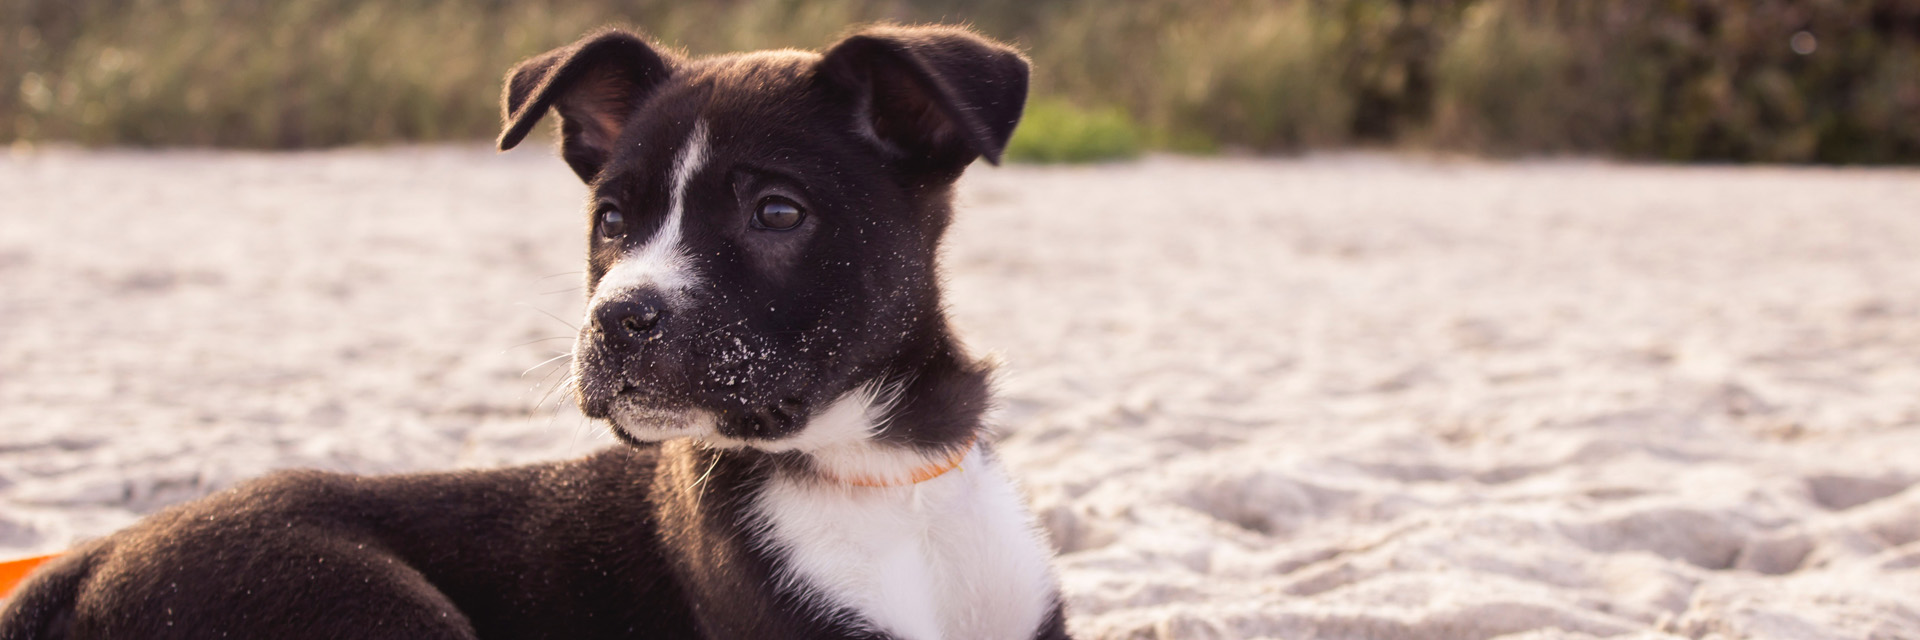 Puppy at the Beach - Pooler Veterinary Hospital